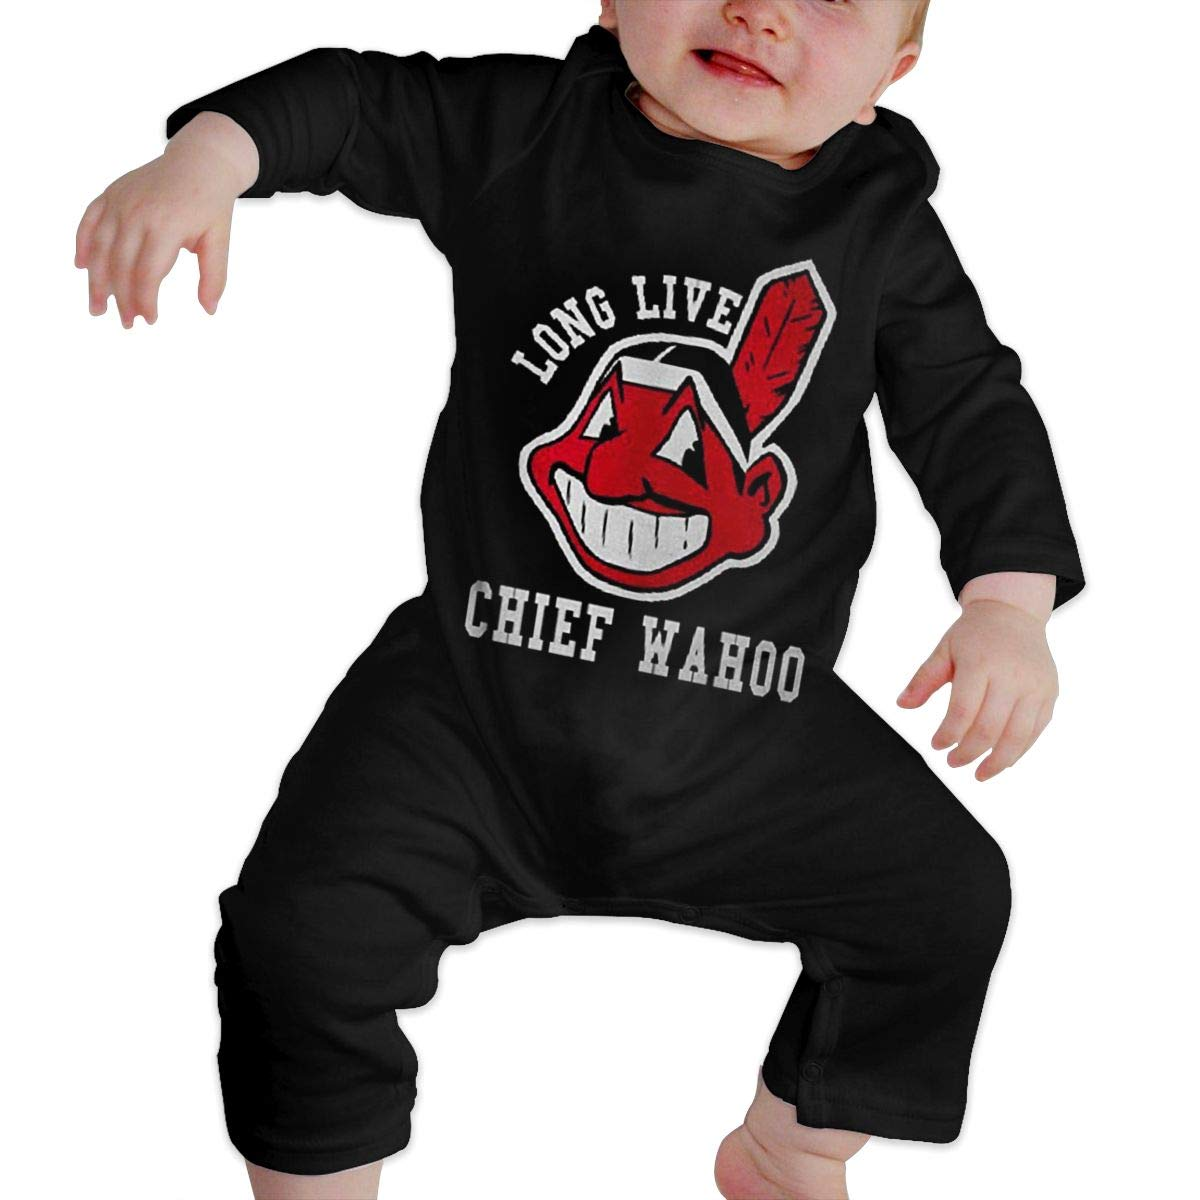 Kids Baby Long Sleeve Romper Long-Live-Chief-Wahoo Unisex Cotton Cute Jumpsuit Baby Crawler Clothes